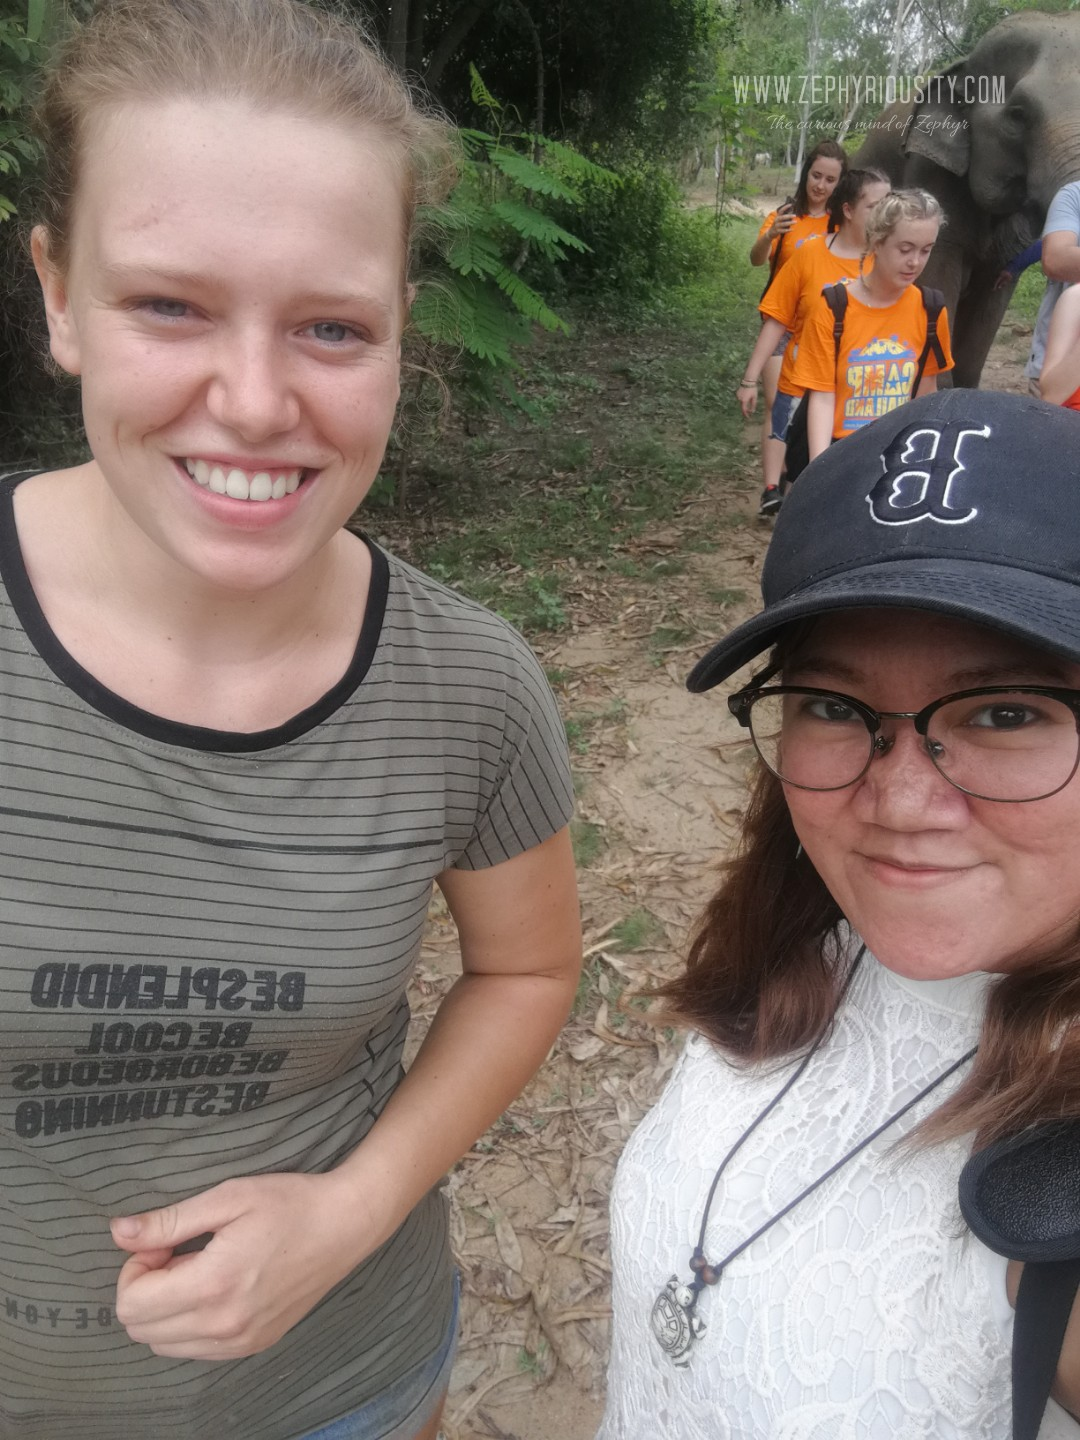 volunteer at wildlife friends foundation thailand with zephyriousity